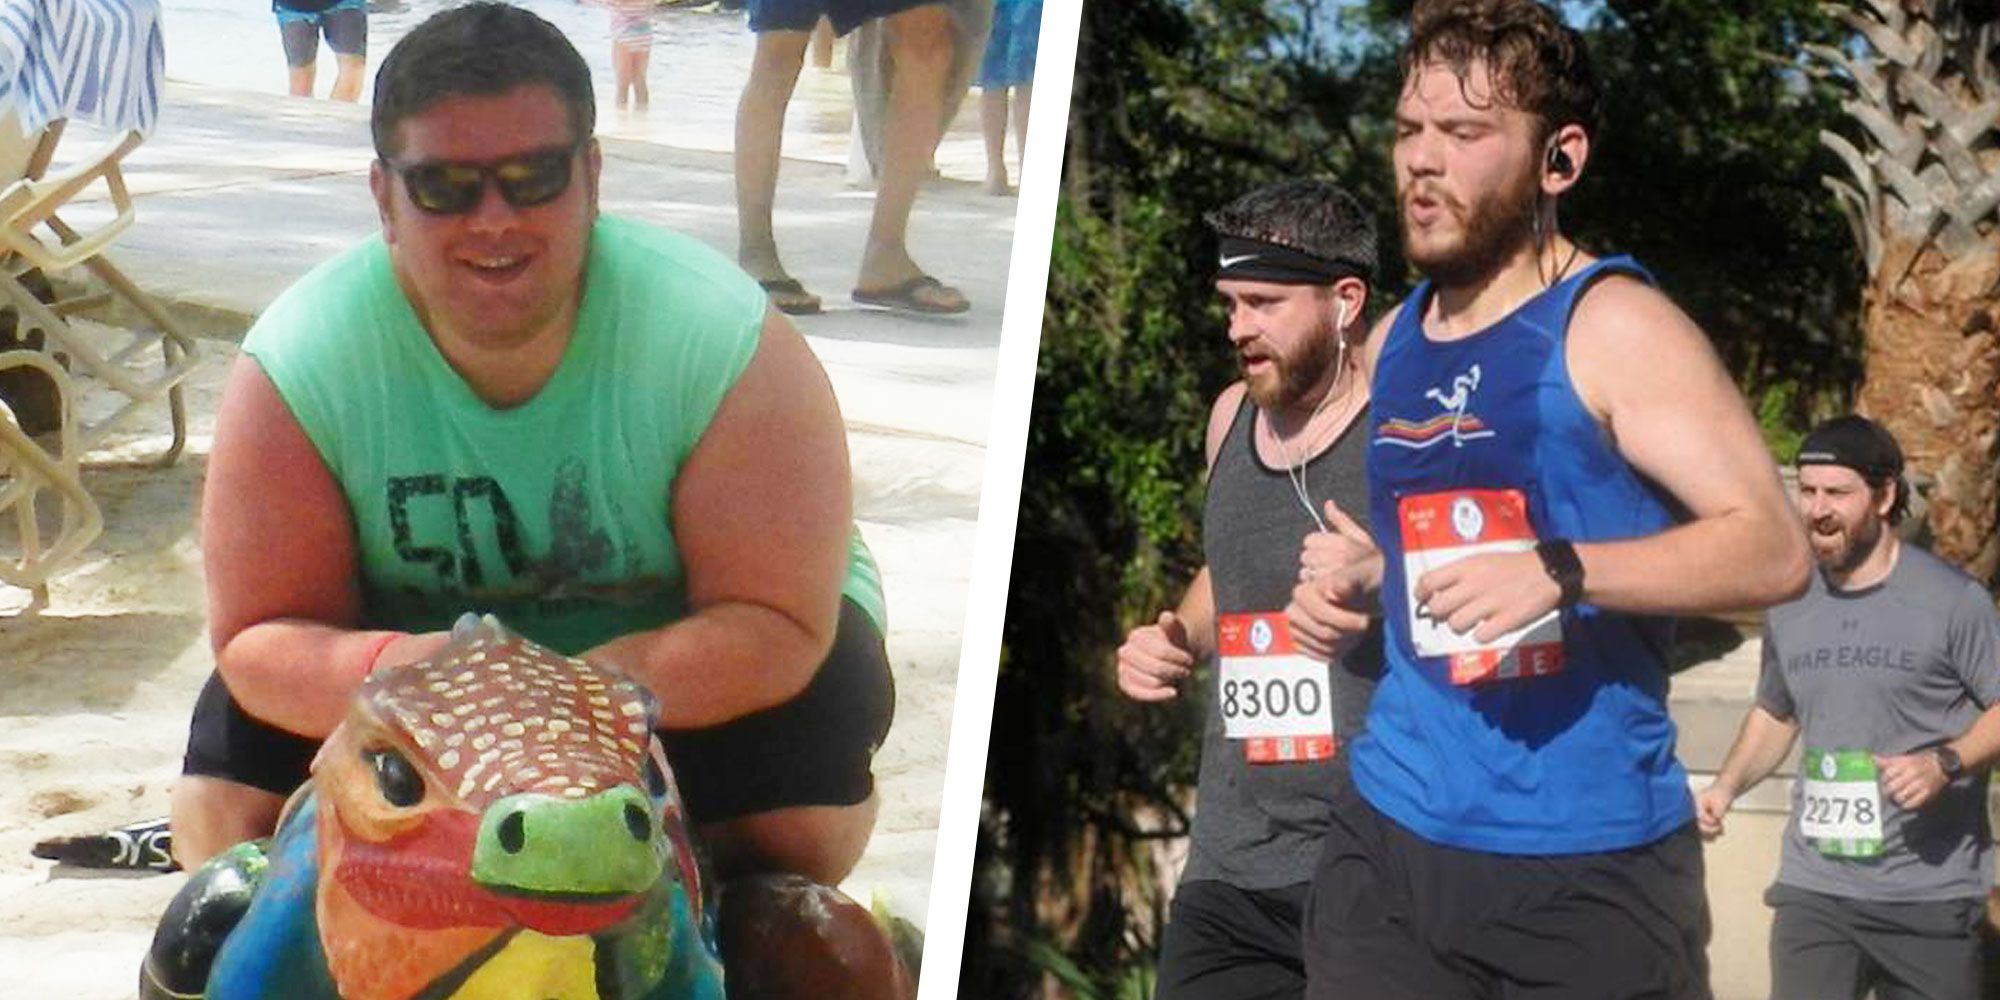 A Simple Cardio Routine Helped This Guy Drop 68kg in 2 Years